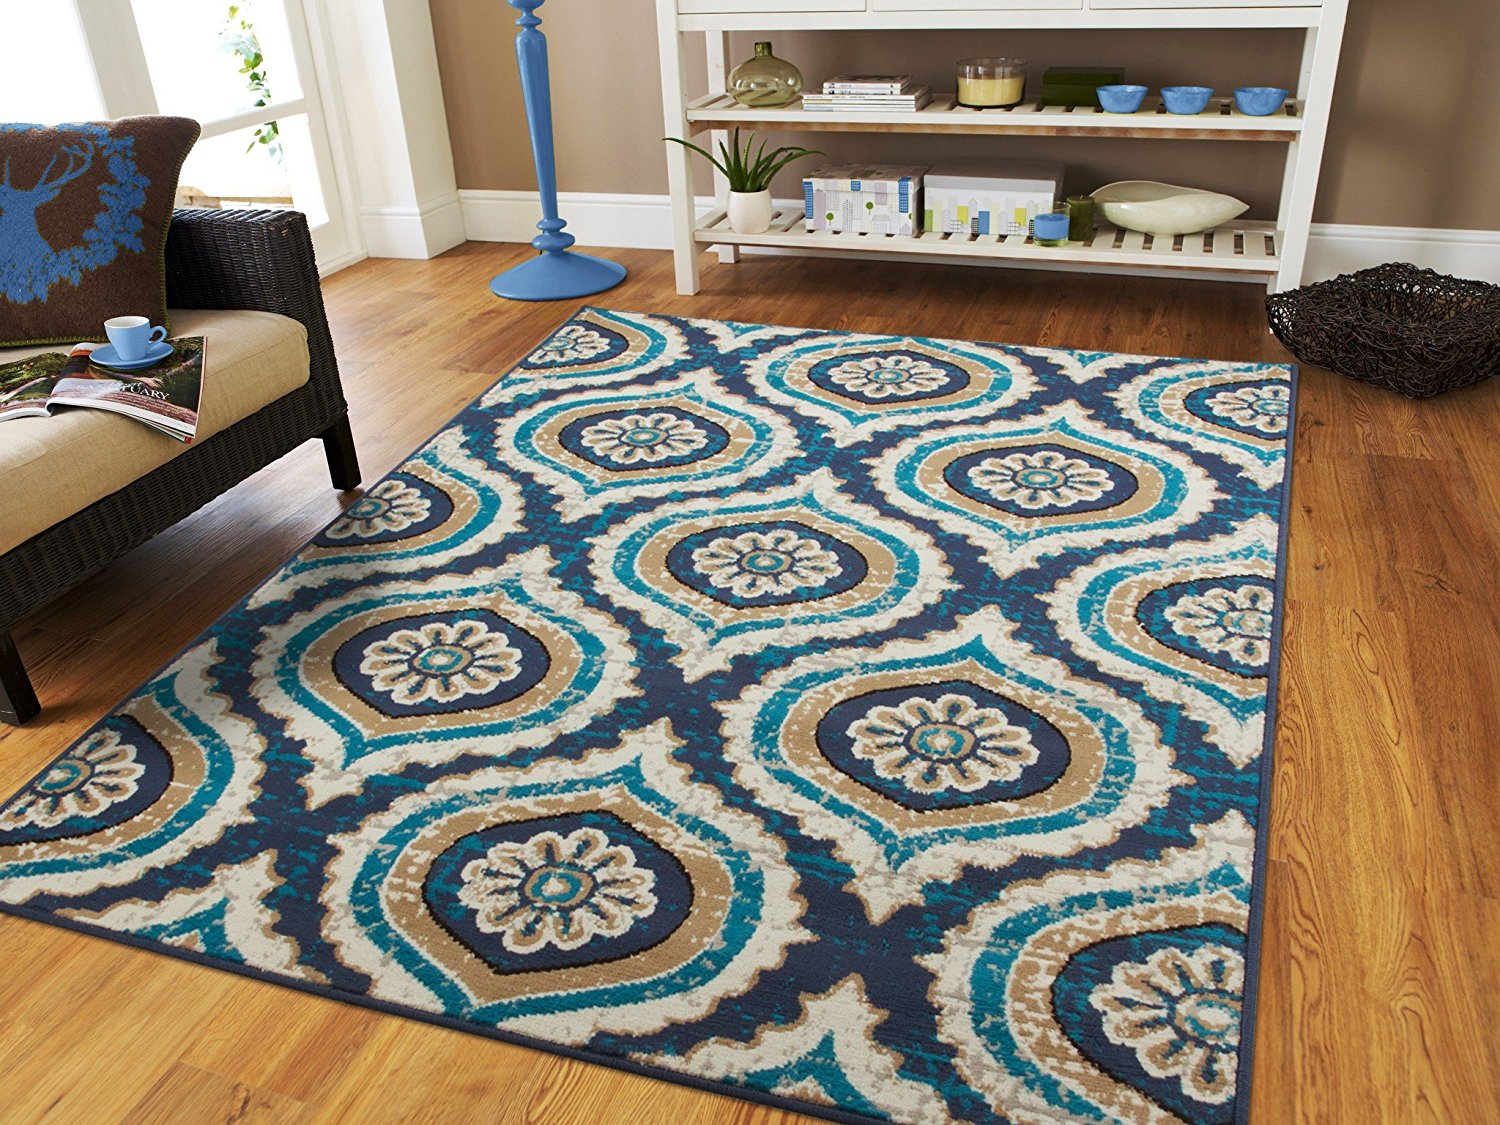 Century Rugs Blue Dining Room Rug For Under The Table 8x10 Contemporary Area  Rugs 8x11 Navy